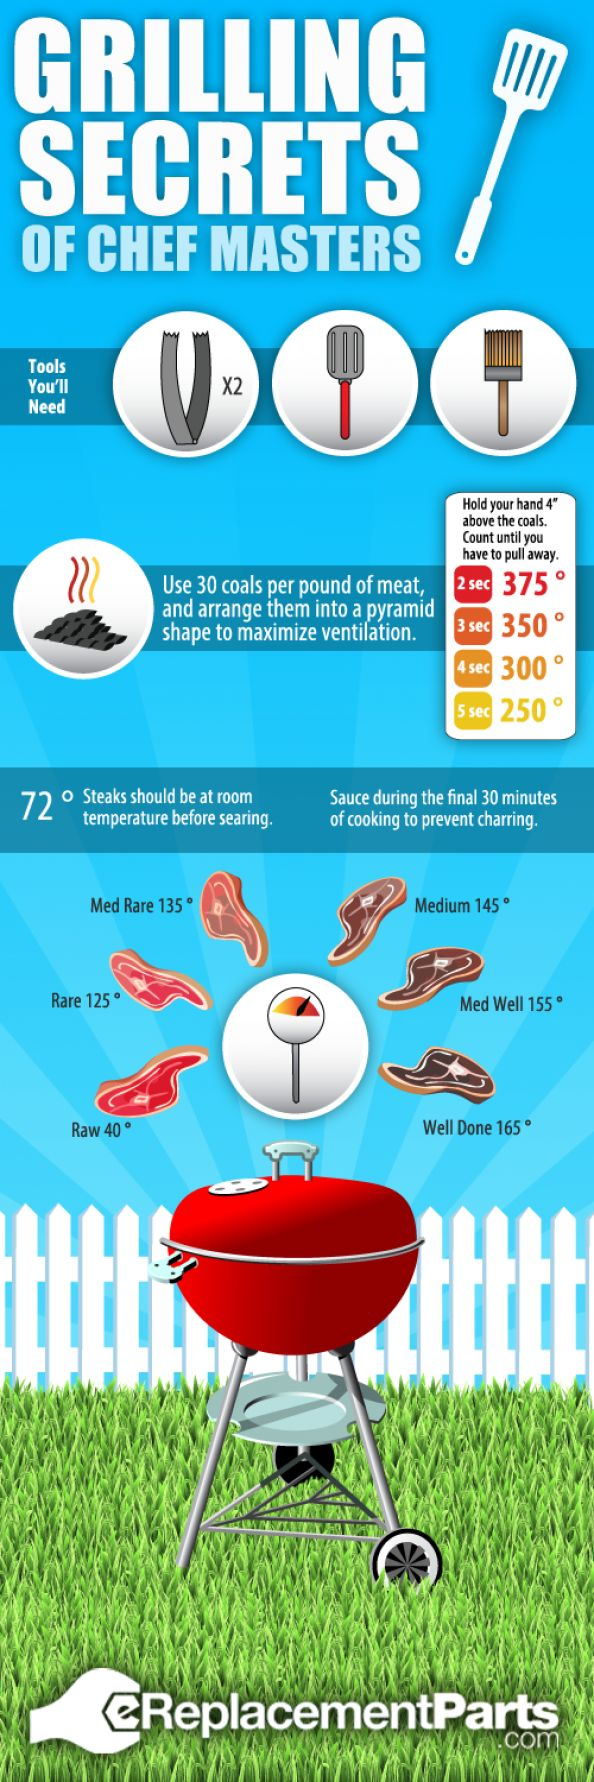 Grilling Secrets of Chef Masters Infographic - BBQ